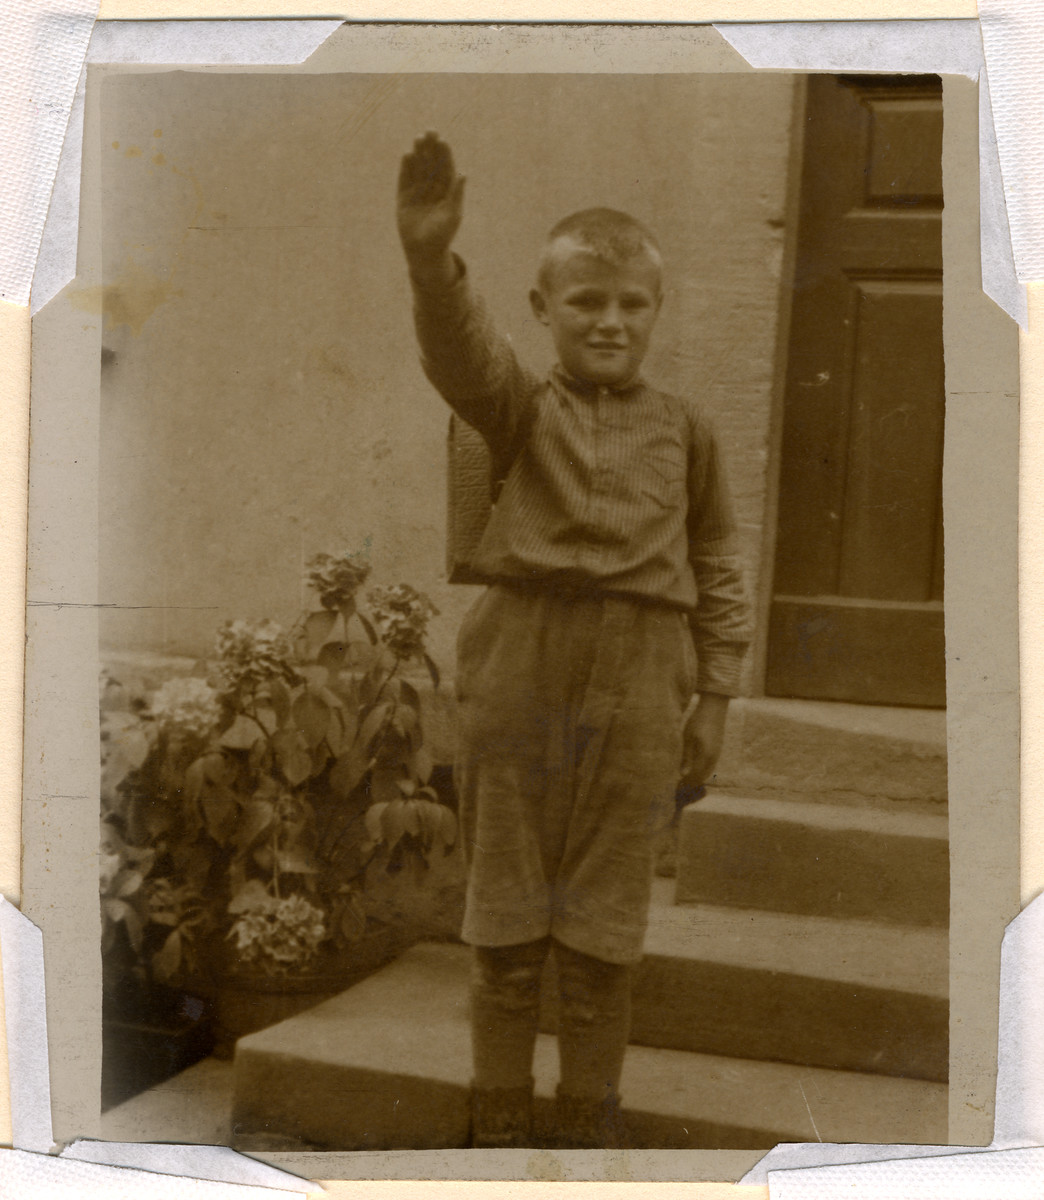 A young boy gives a Nazi salute.